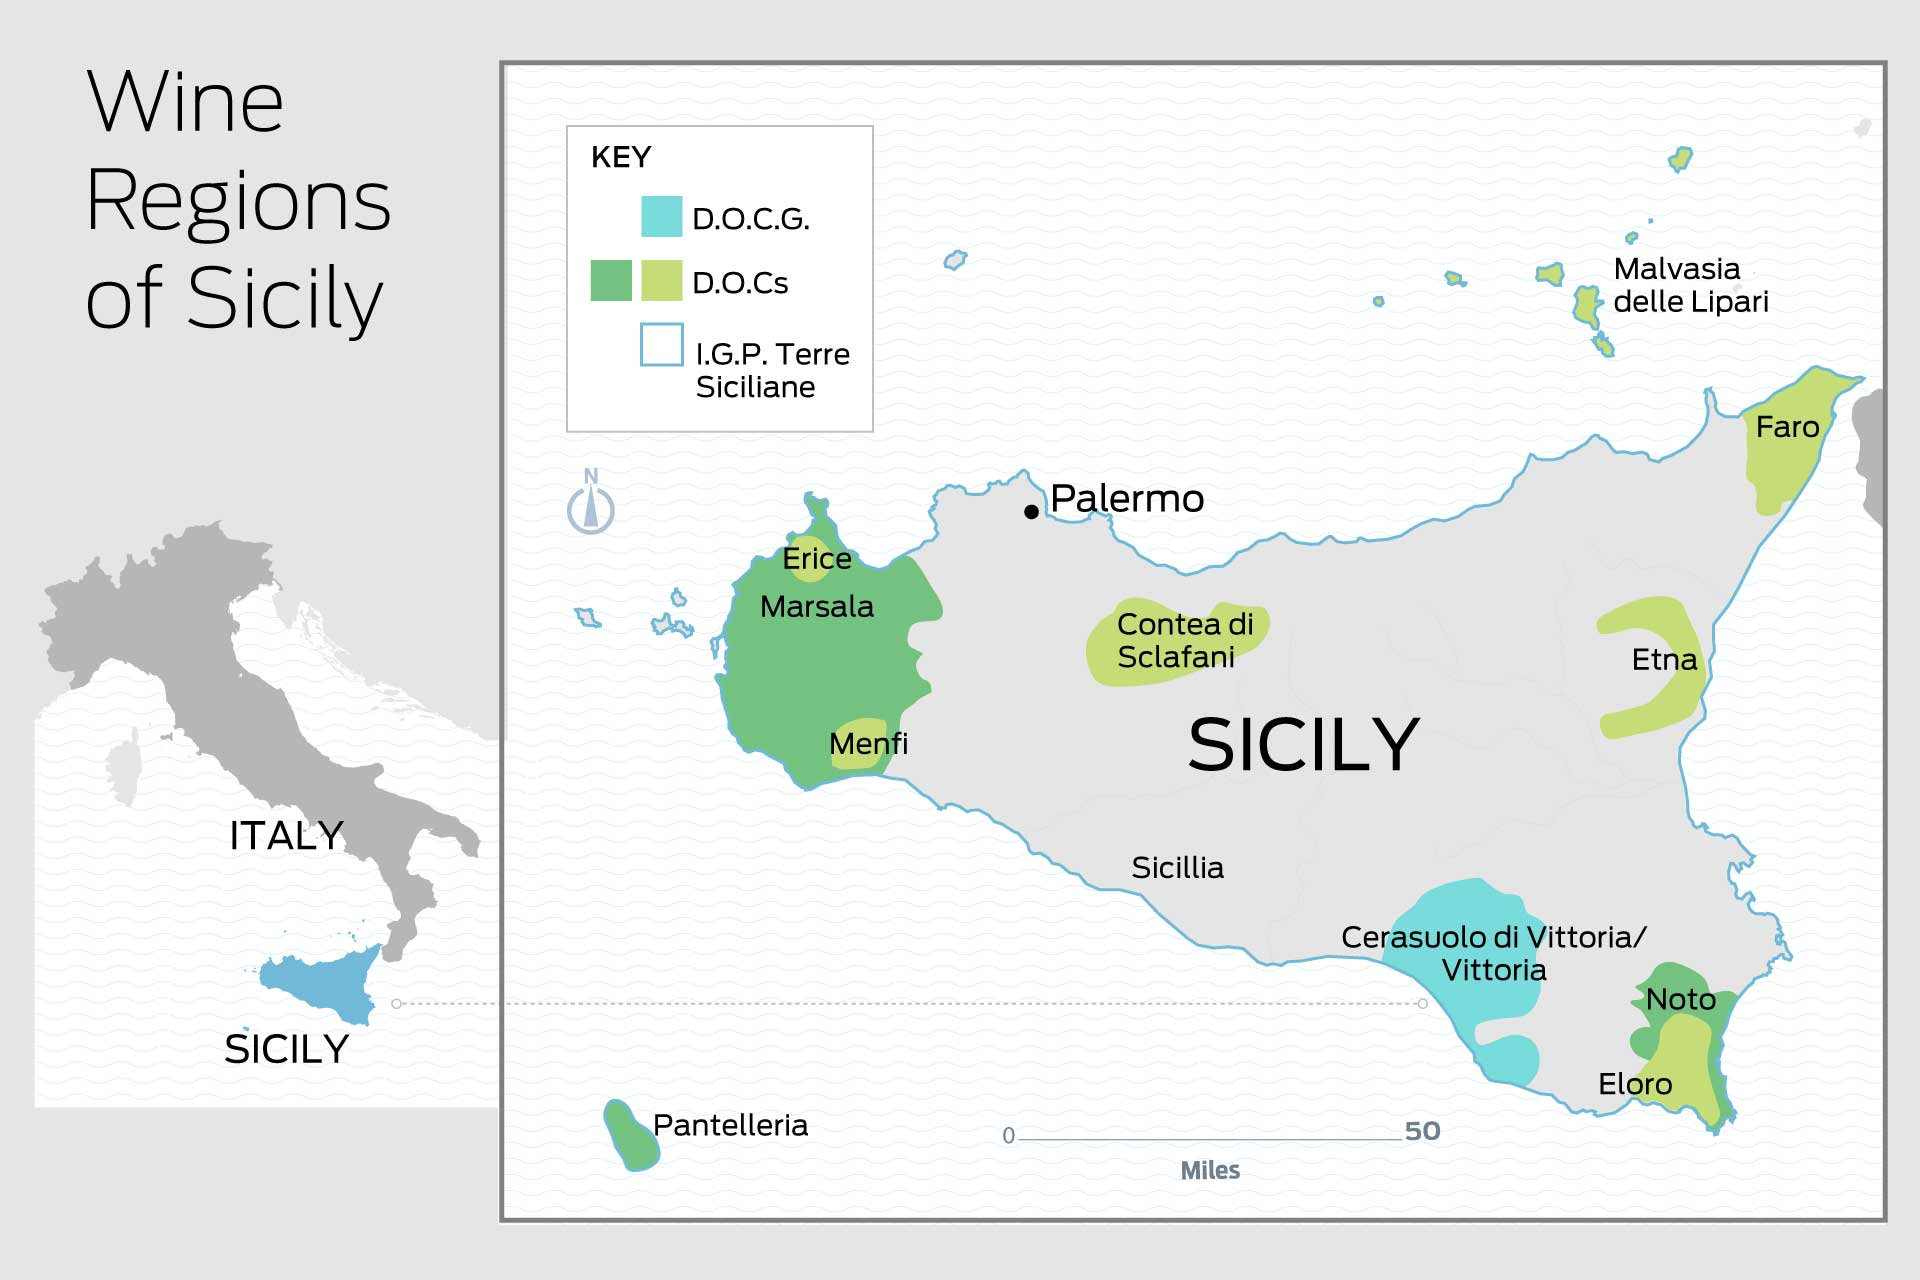 Map of the important wine regions of Sicily